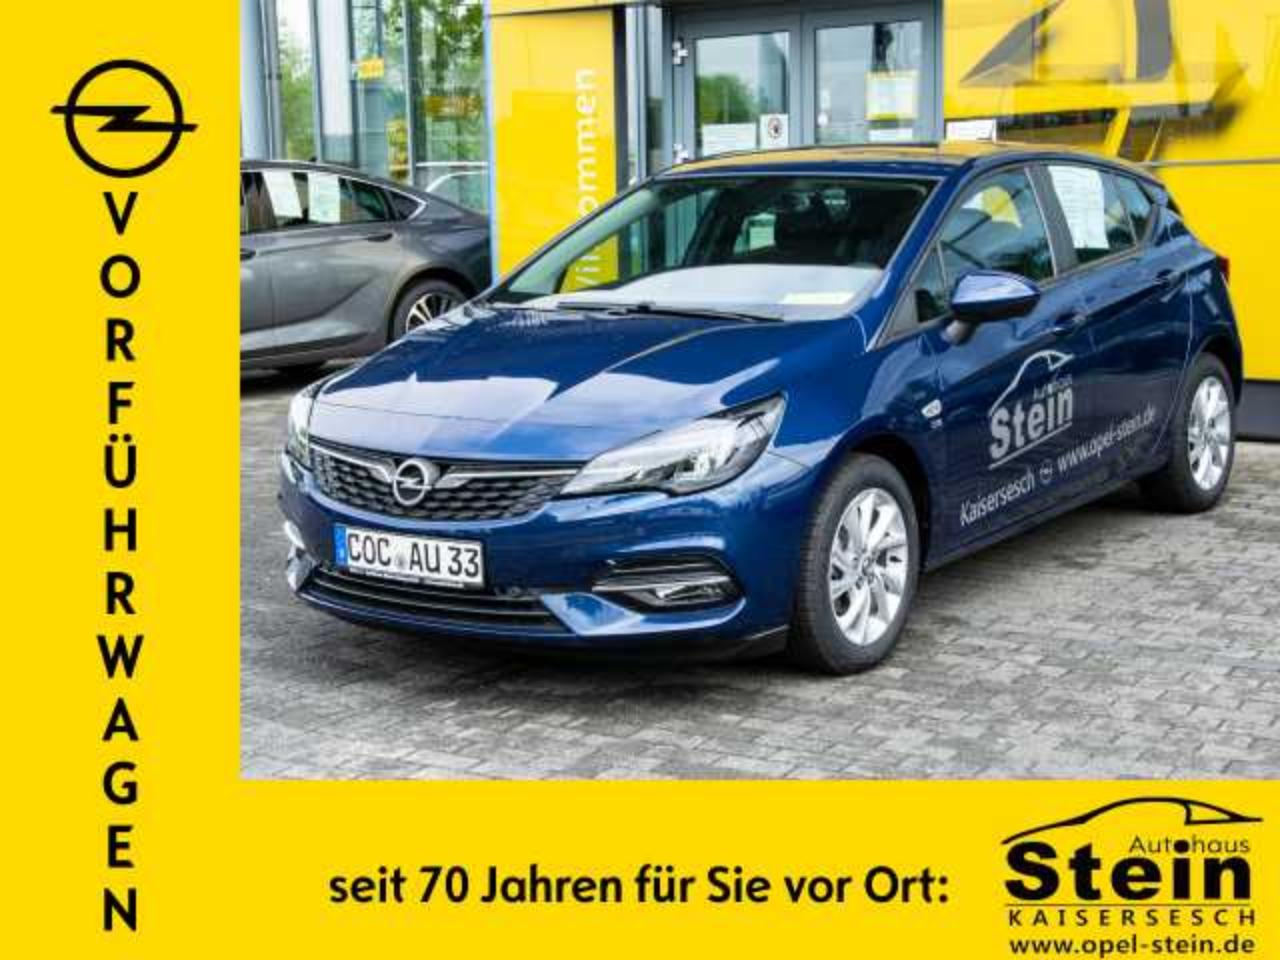 Opel Astra Astra K 120 Jahre 1.4 107 kW Automatic, Navi,LED,A